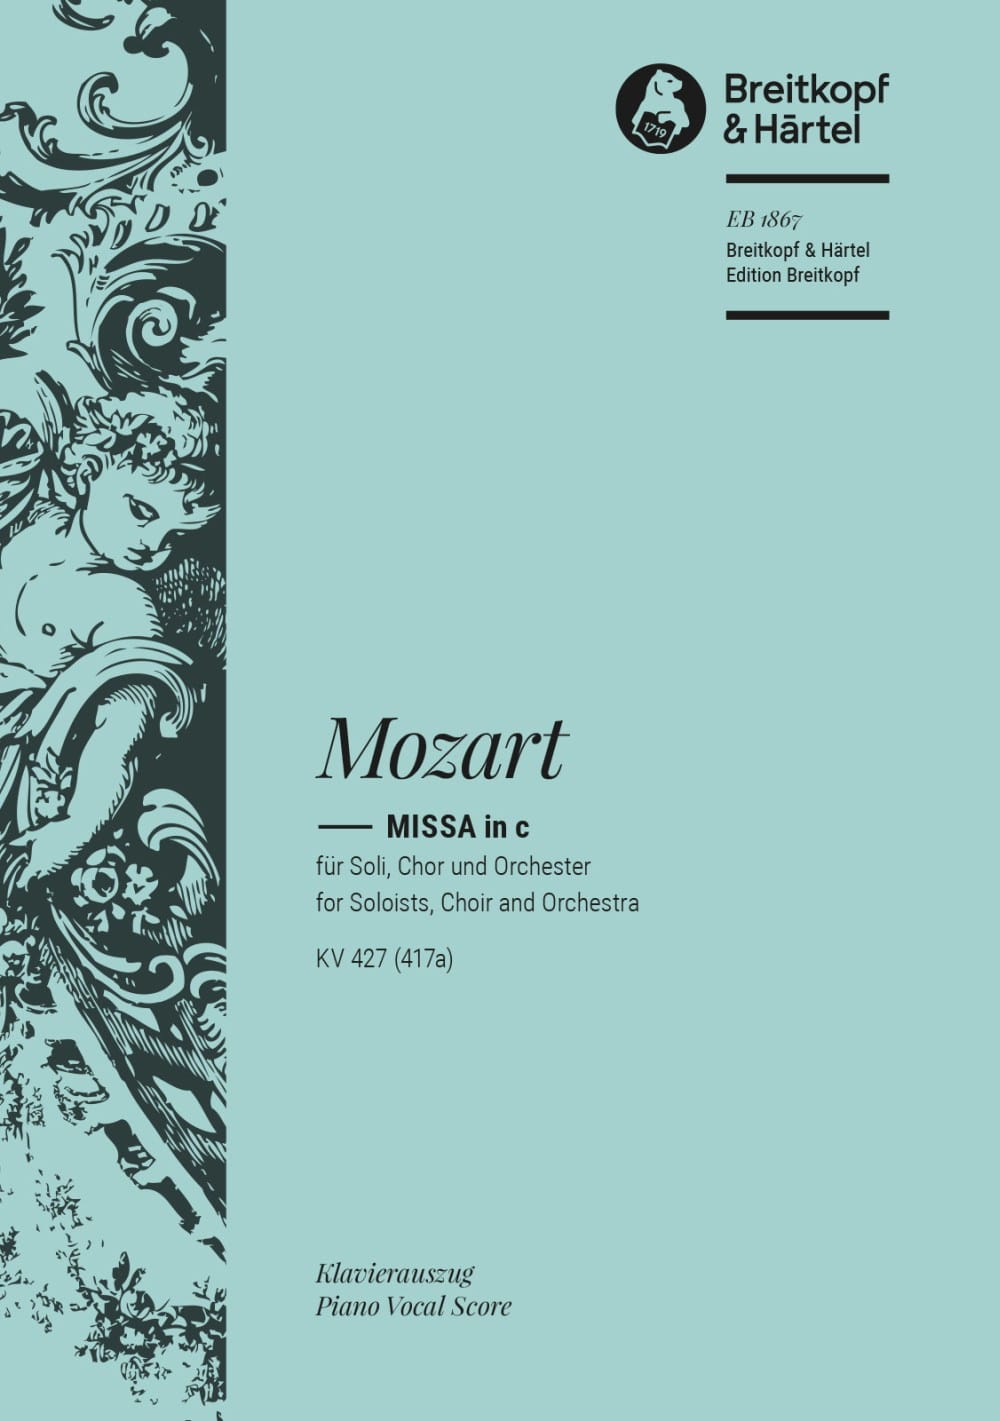 MOZART - Grande Messa in Do minore K 427 - Partition - di-arezzo.it